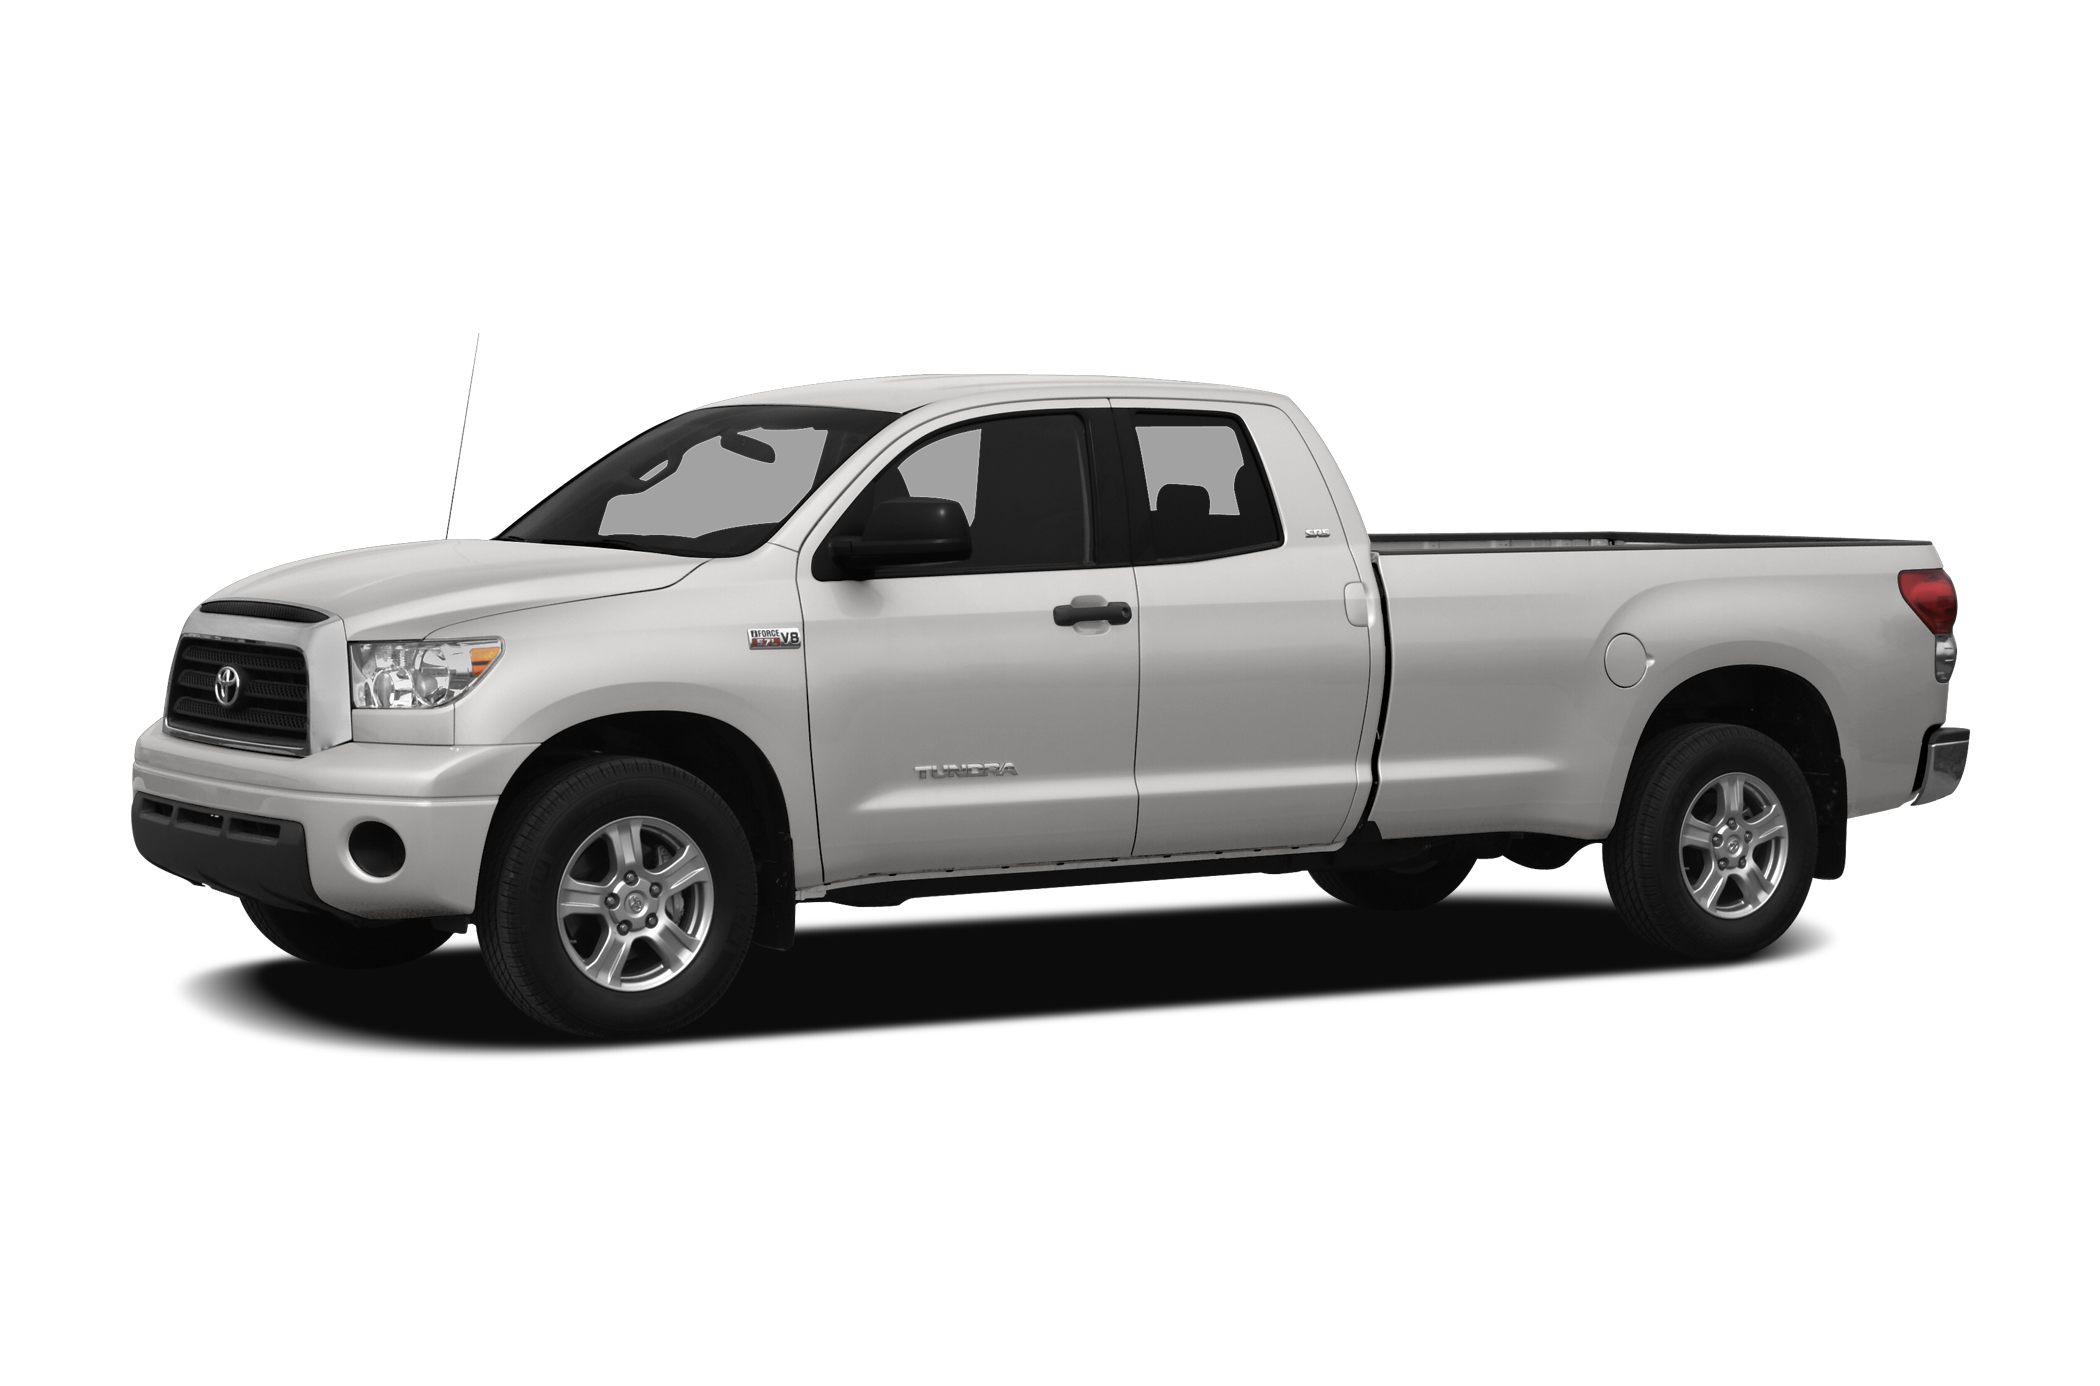 2008 Toyota Tundra Base This 2008 Toyota Tundra 4dr Dbl 57L V8 6-Spd AT SE features a 57L V8 D